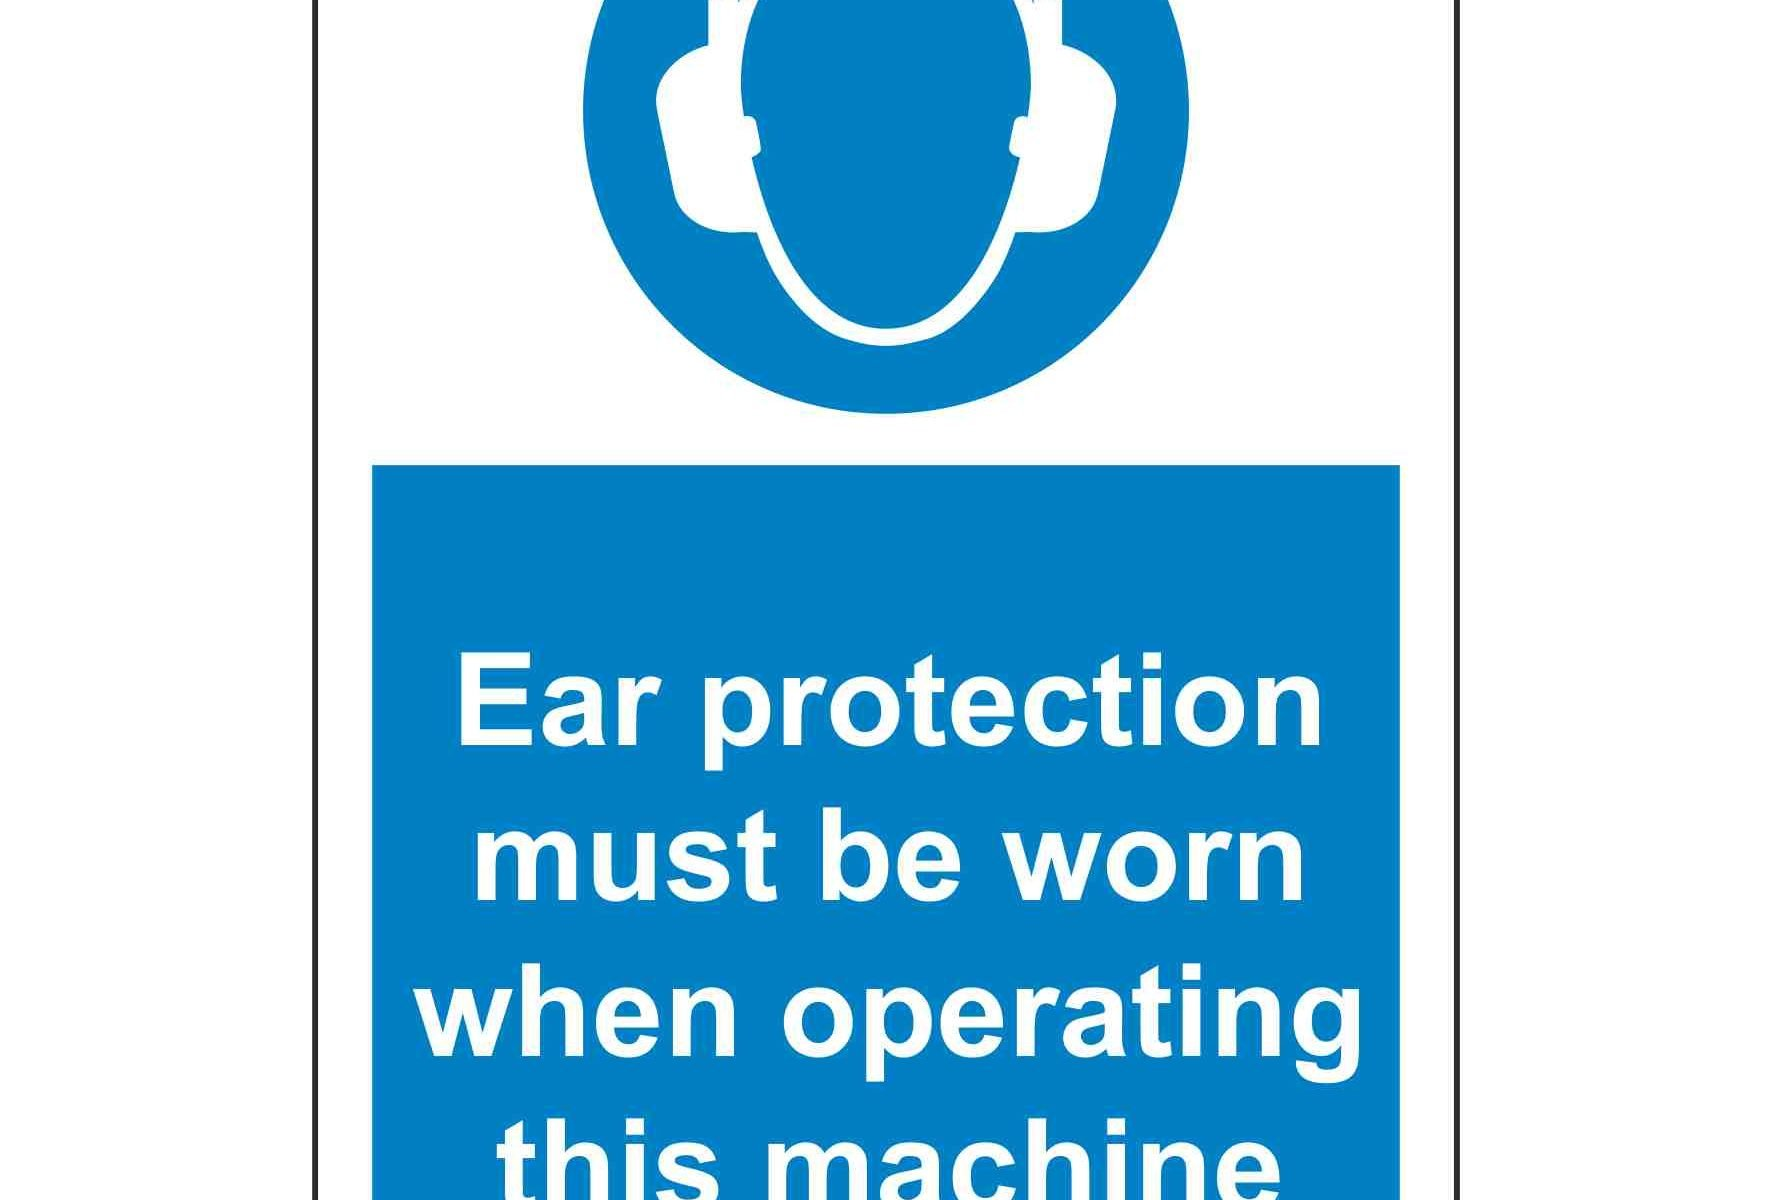 Ear protection must be worn when operating this machine